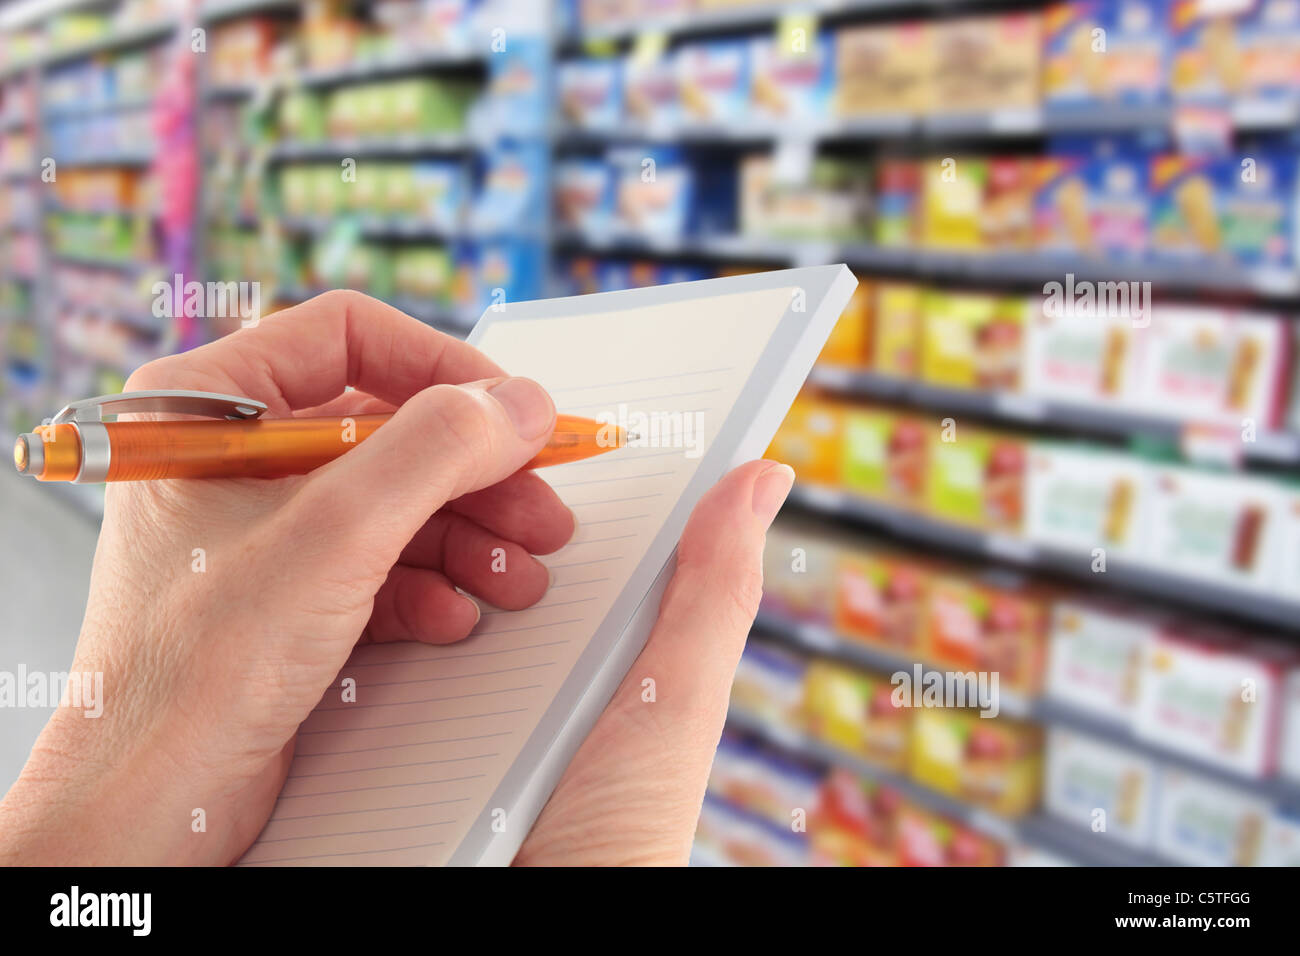 Writing a Shopping List in the Supermarket - Stock Image